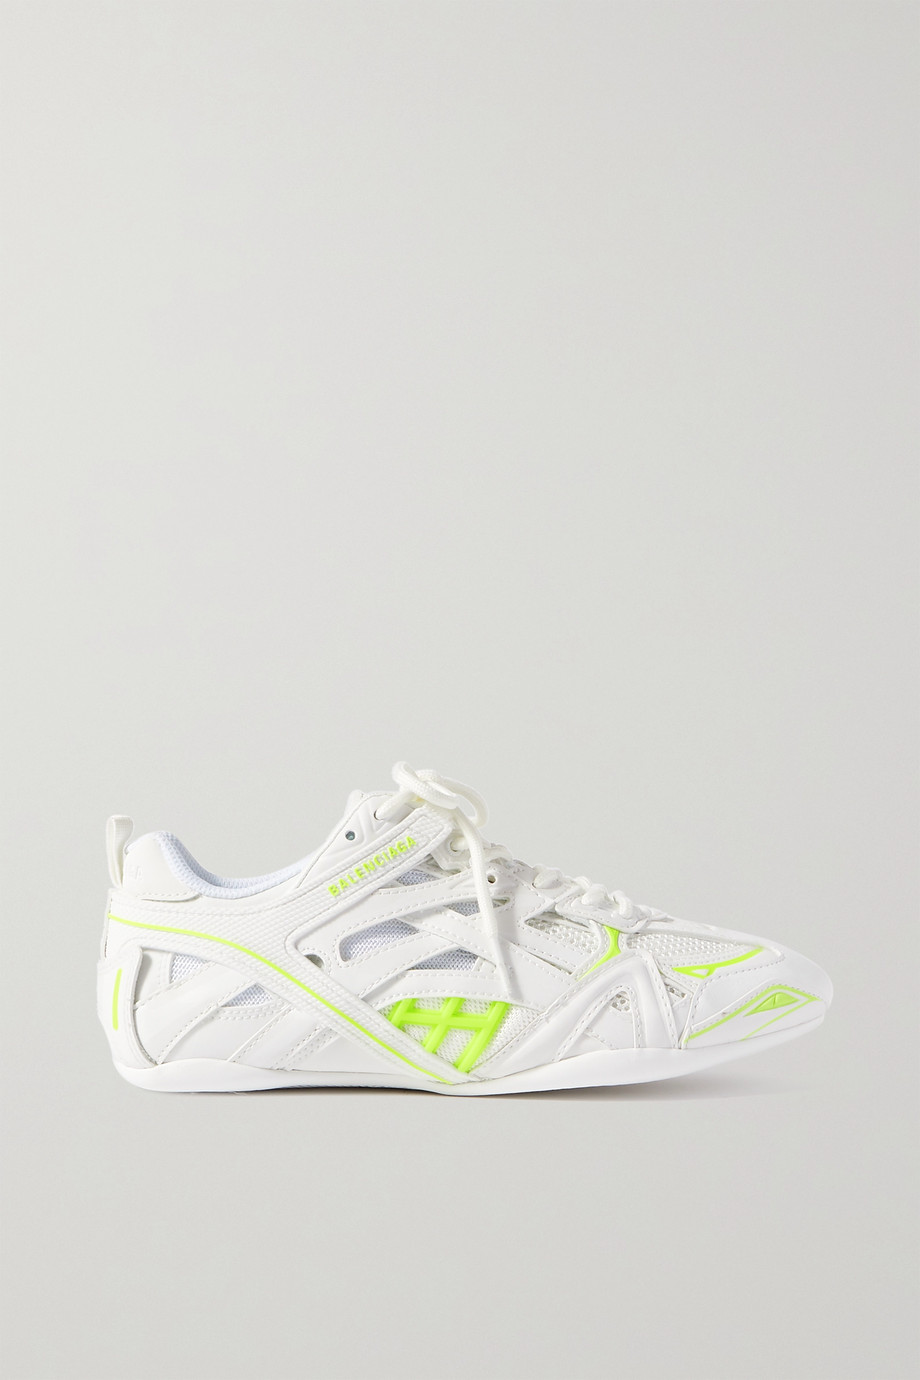 Balenciaga Closed logo-print leather, rubber, mesh and suede sneakers